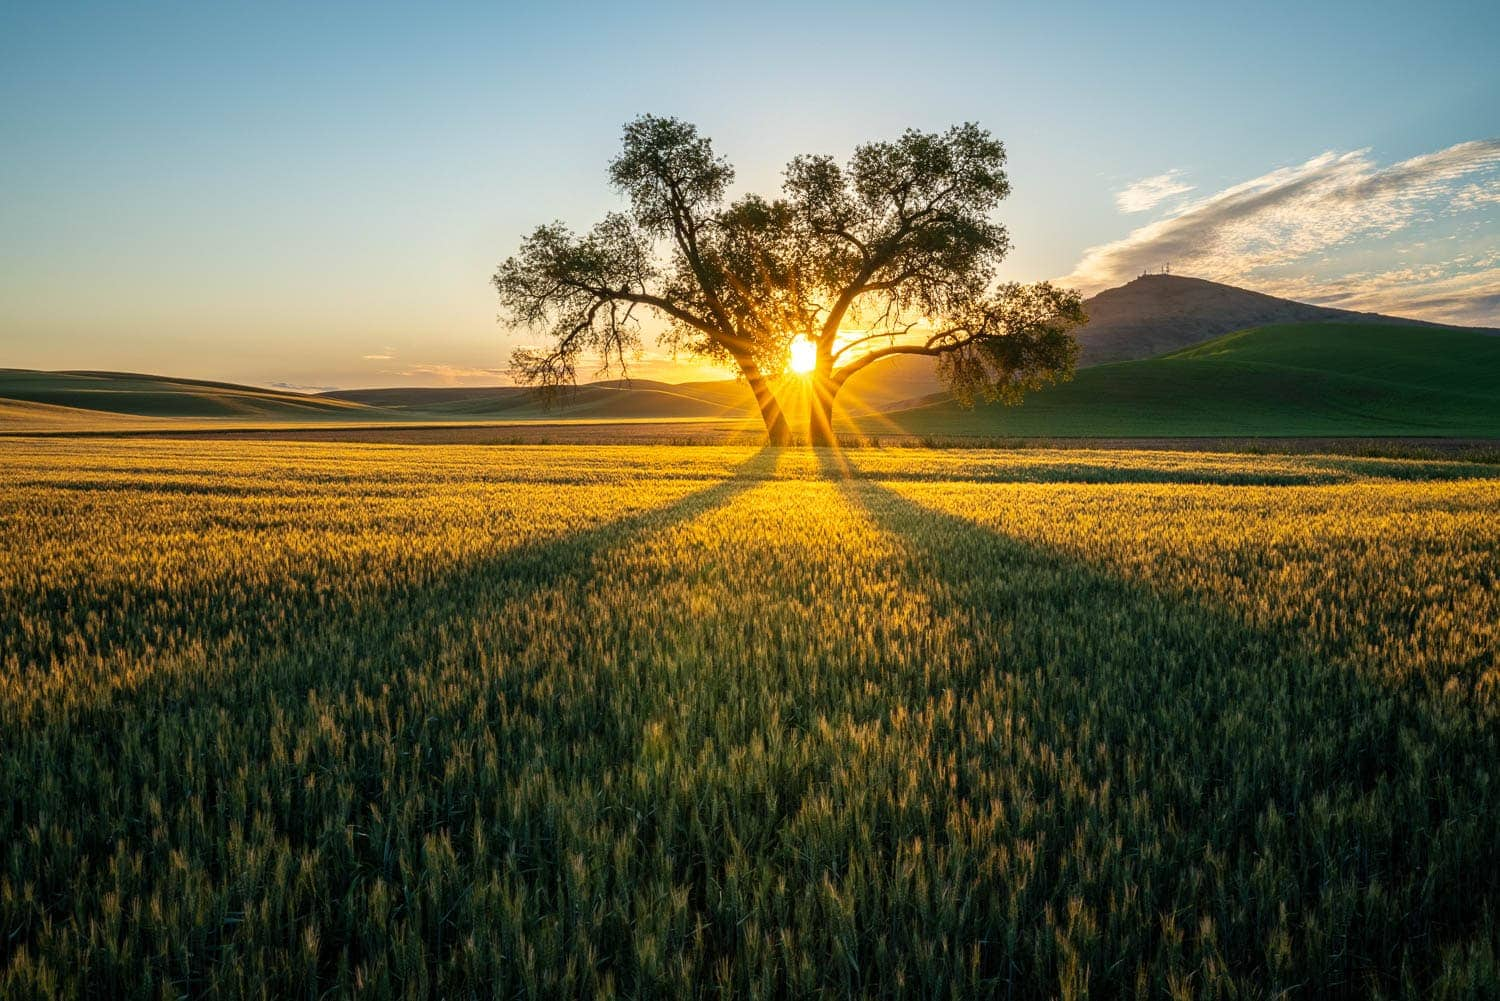 Sunrise through cottonwood tree in wheat field